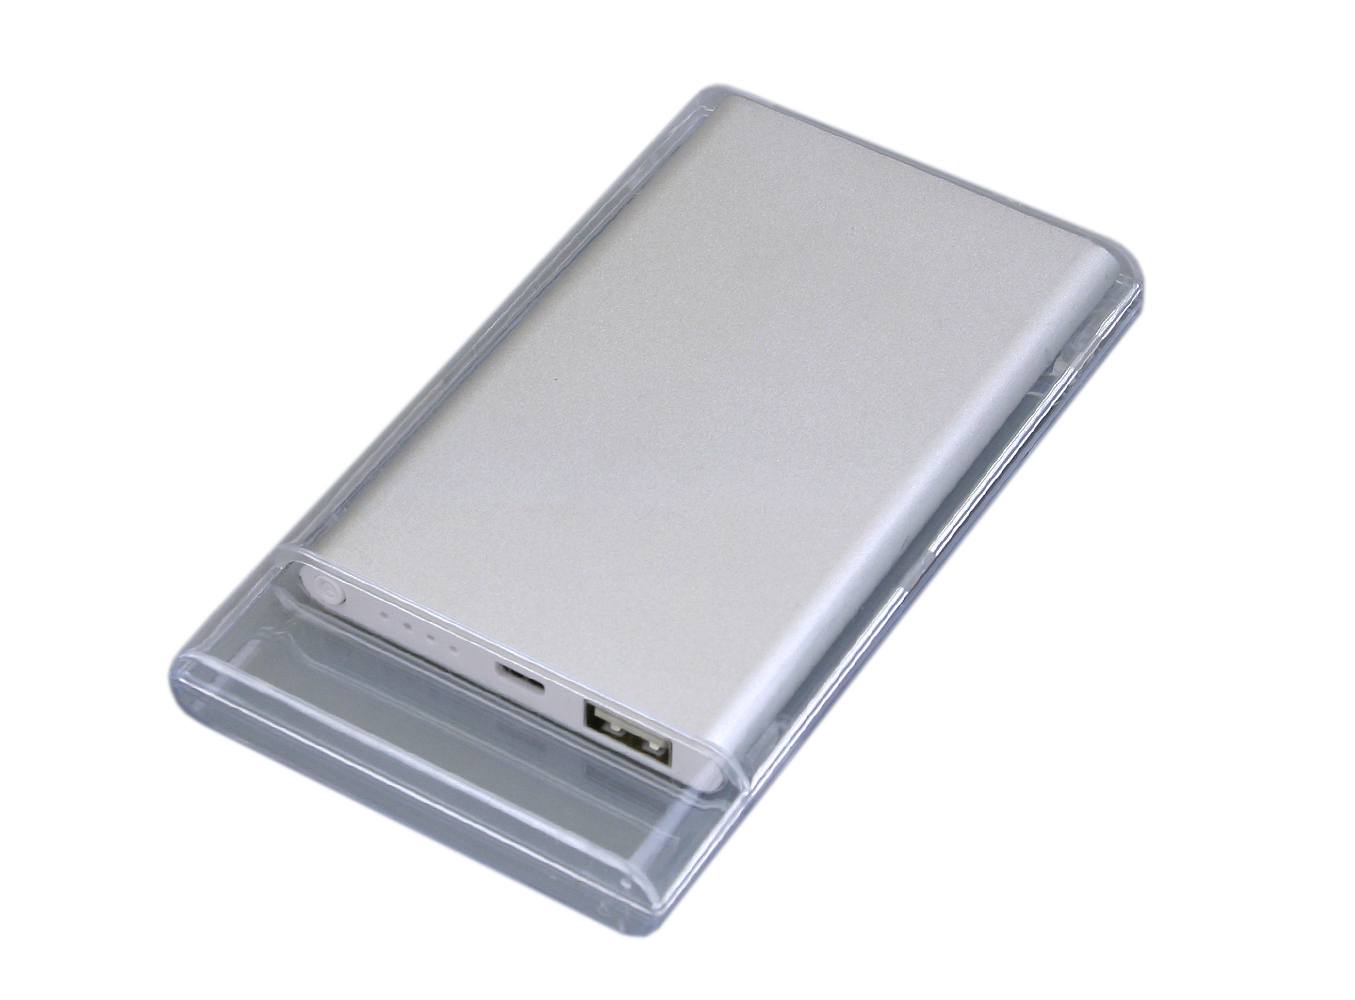 Купить Power Bank 4000 mAh серебристый PB001